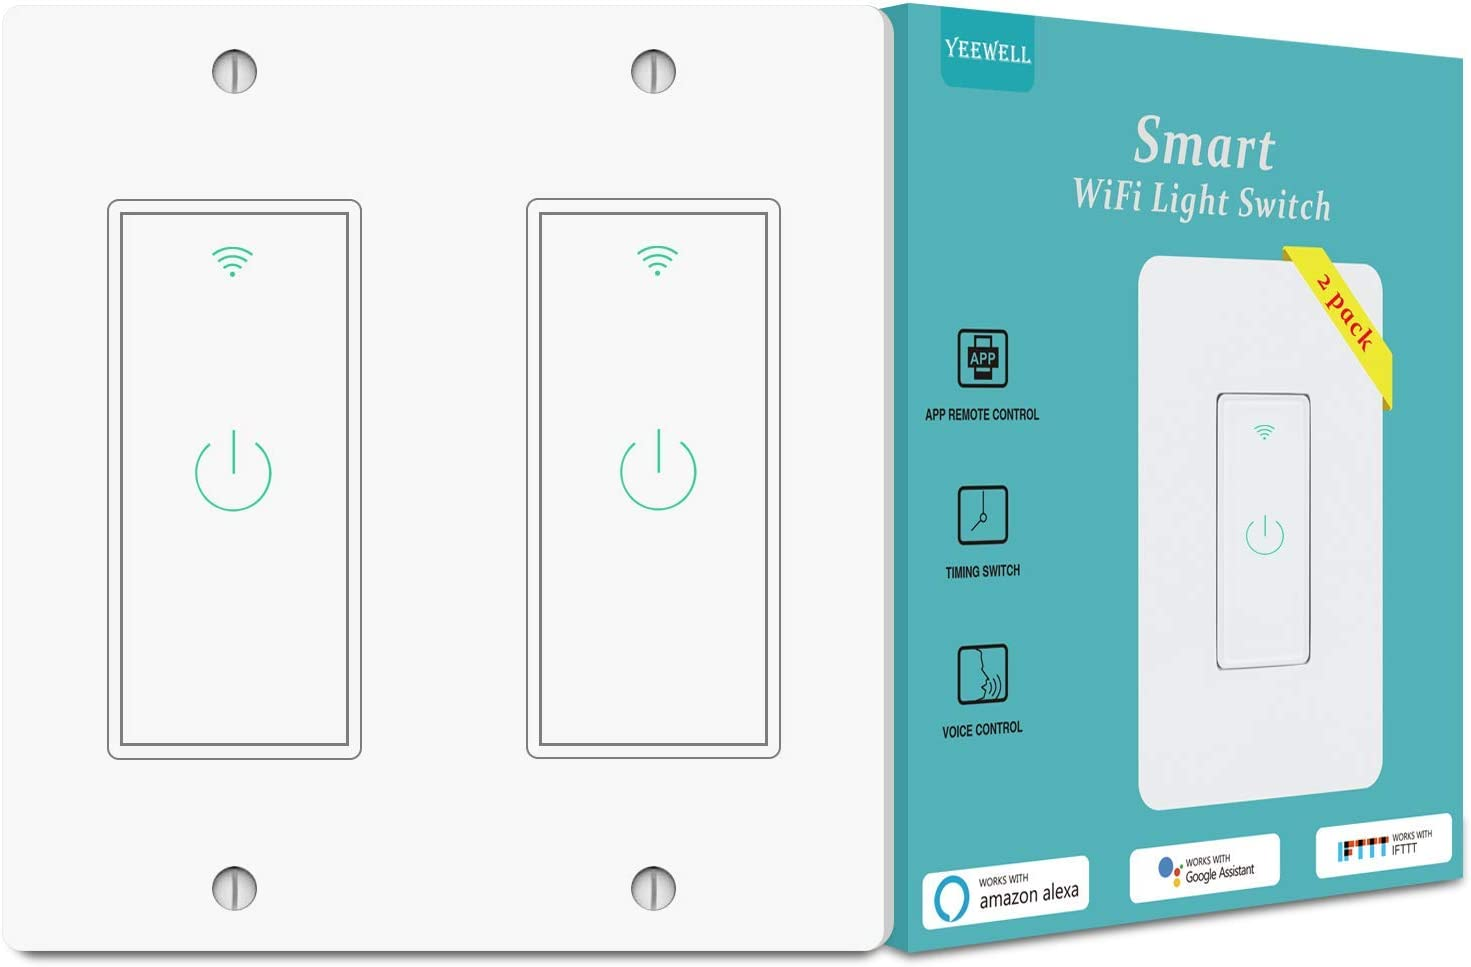 Smart Light Switch, Yeewell WiFi Light Switch with Timer and Remote Control, Works with Alexa, Google home and IFTTT, Neutral Wire Needed, Single Pole, No Hub Required, 2 gang